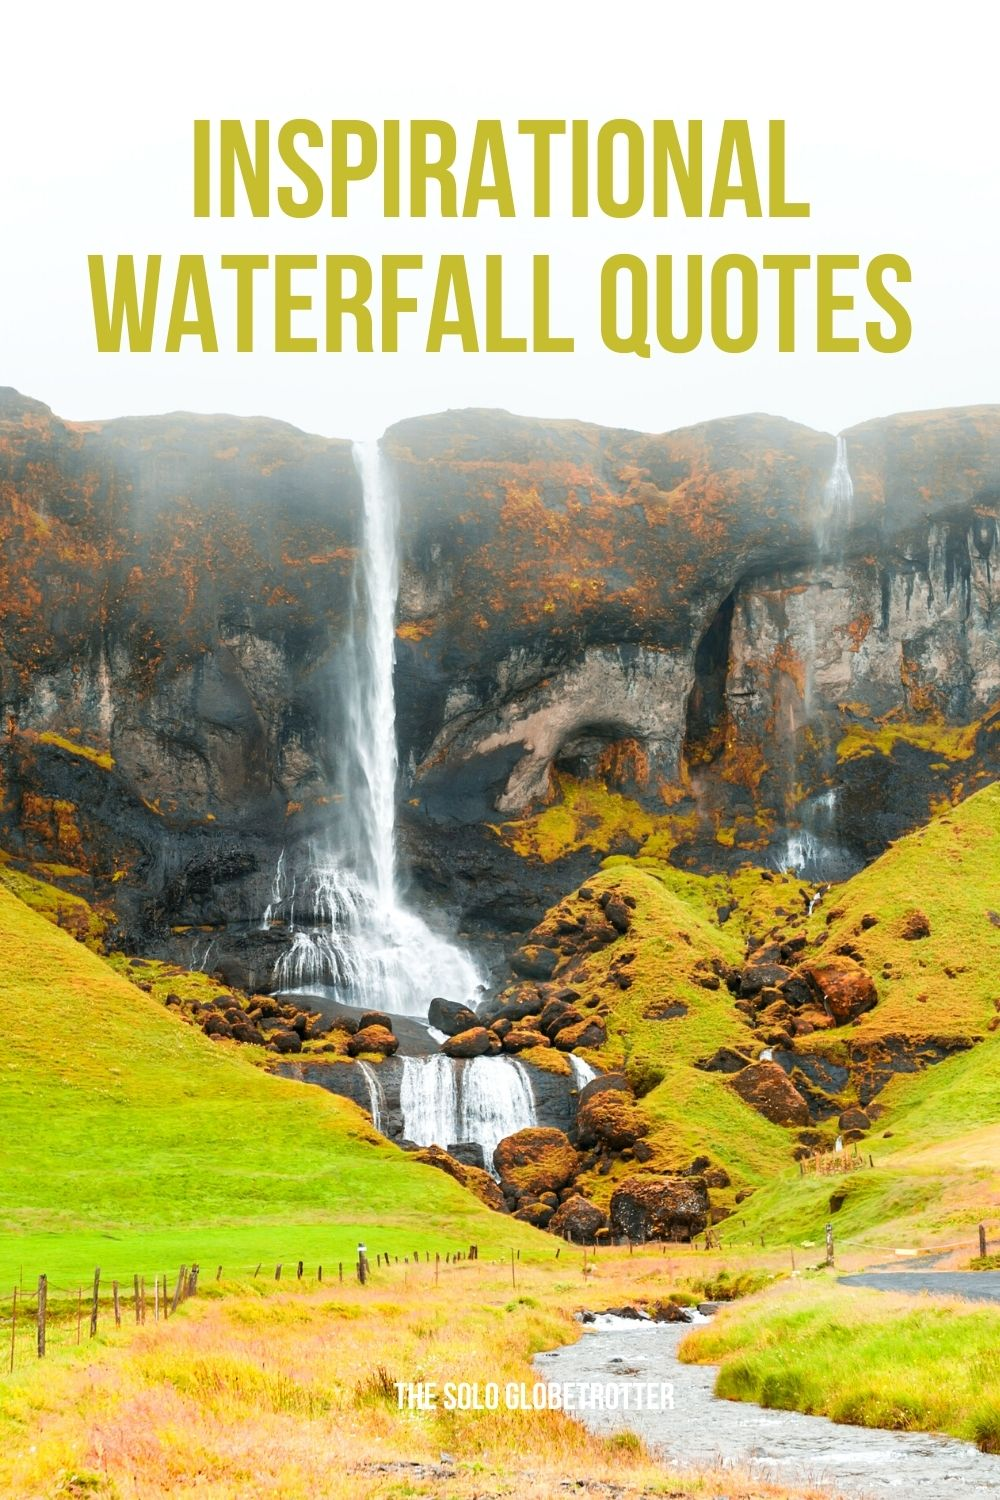 Best waterfall quotes and captions